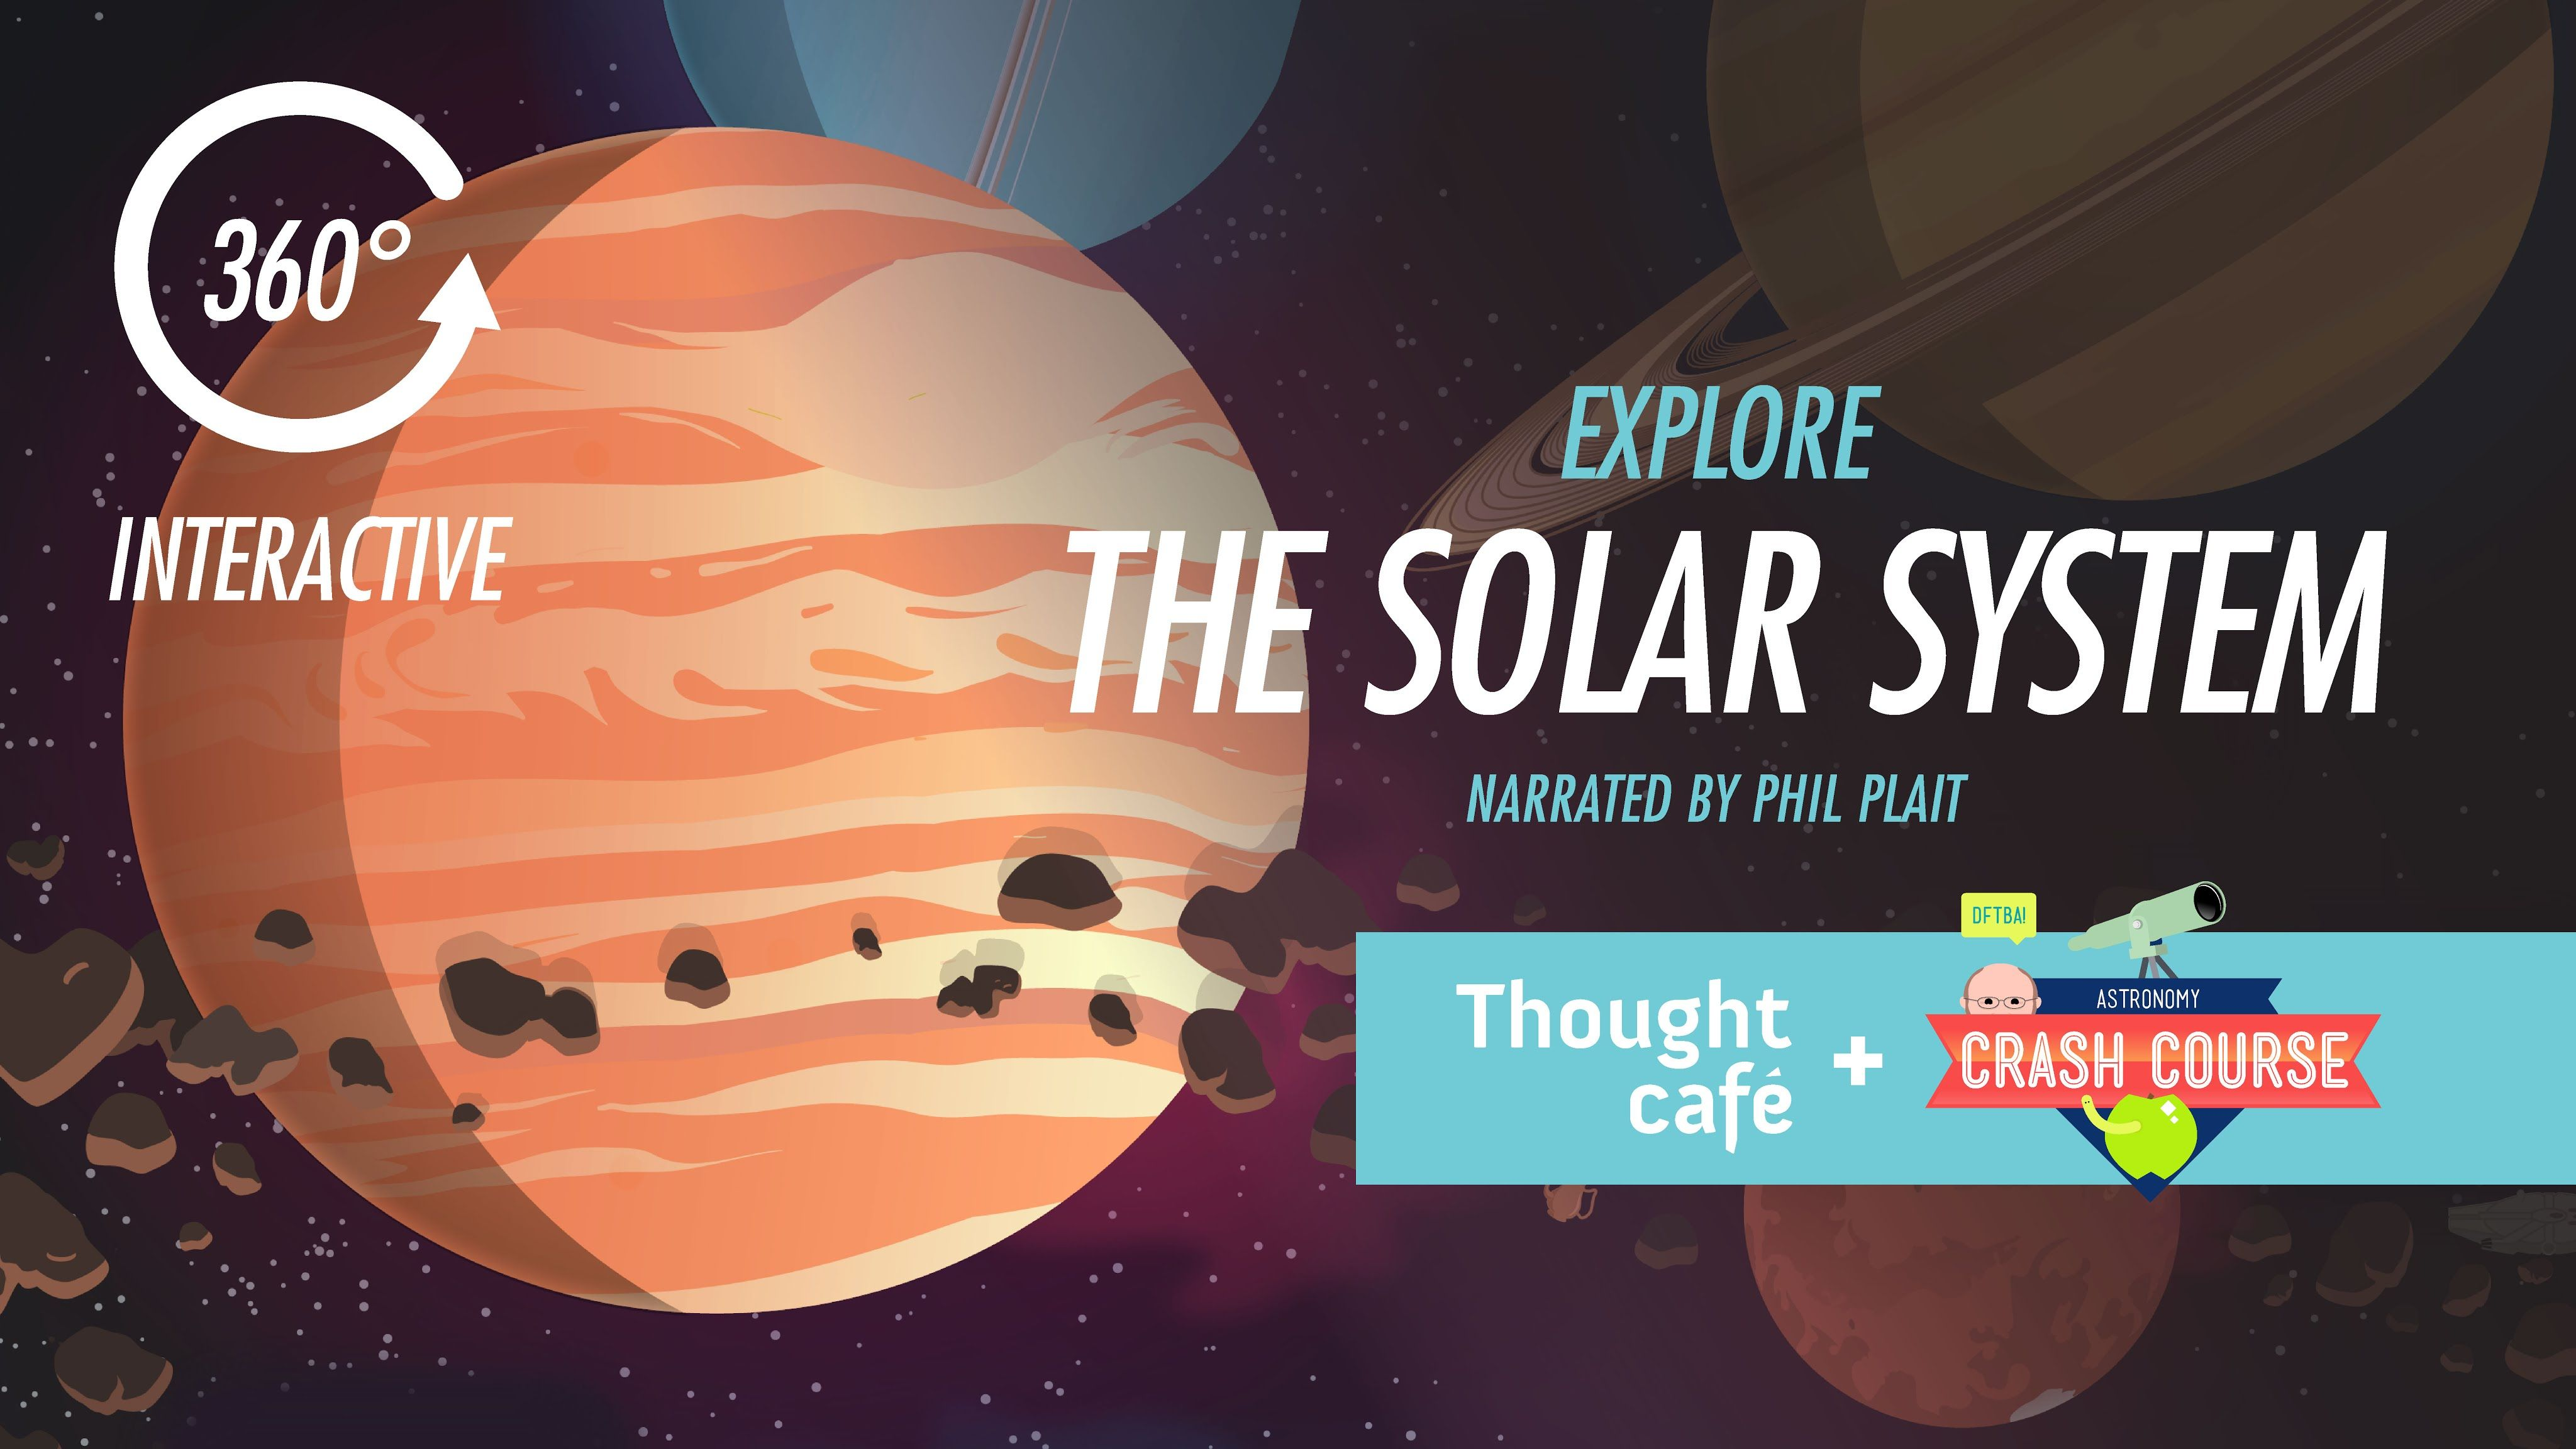 Take A 360 Degree Virtual Tour Of Our Solar System With